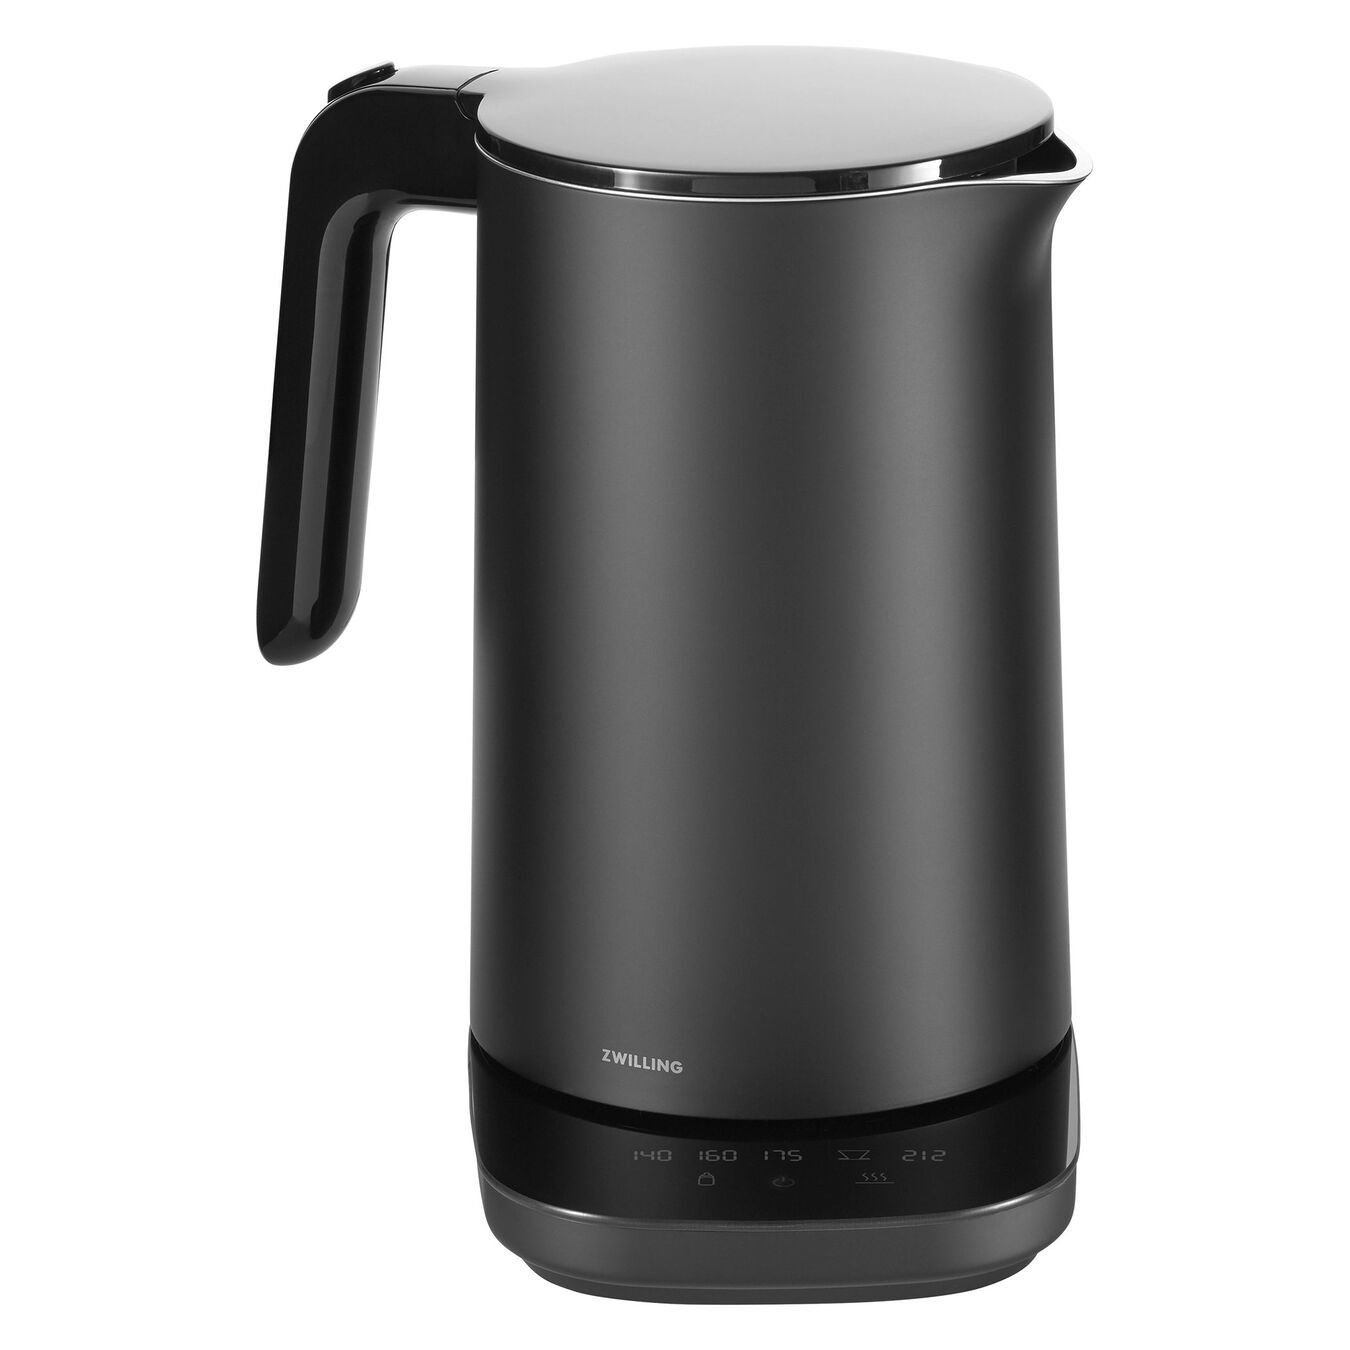 Cool Touch Kettle Pro - Black,,large 4